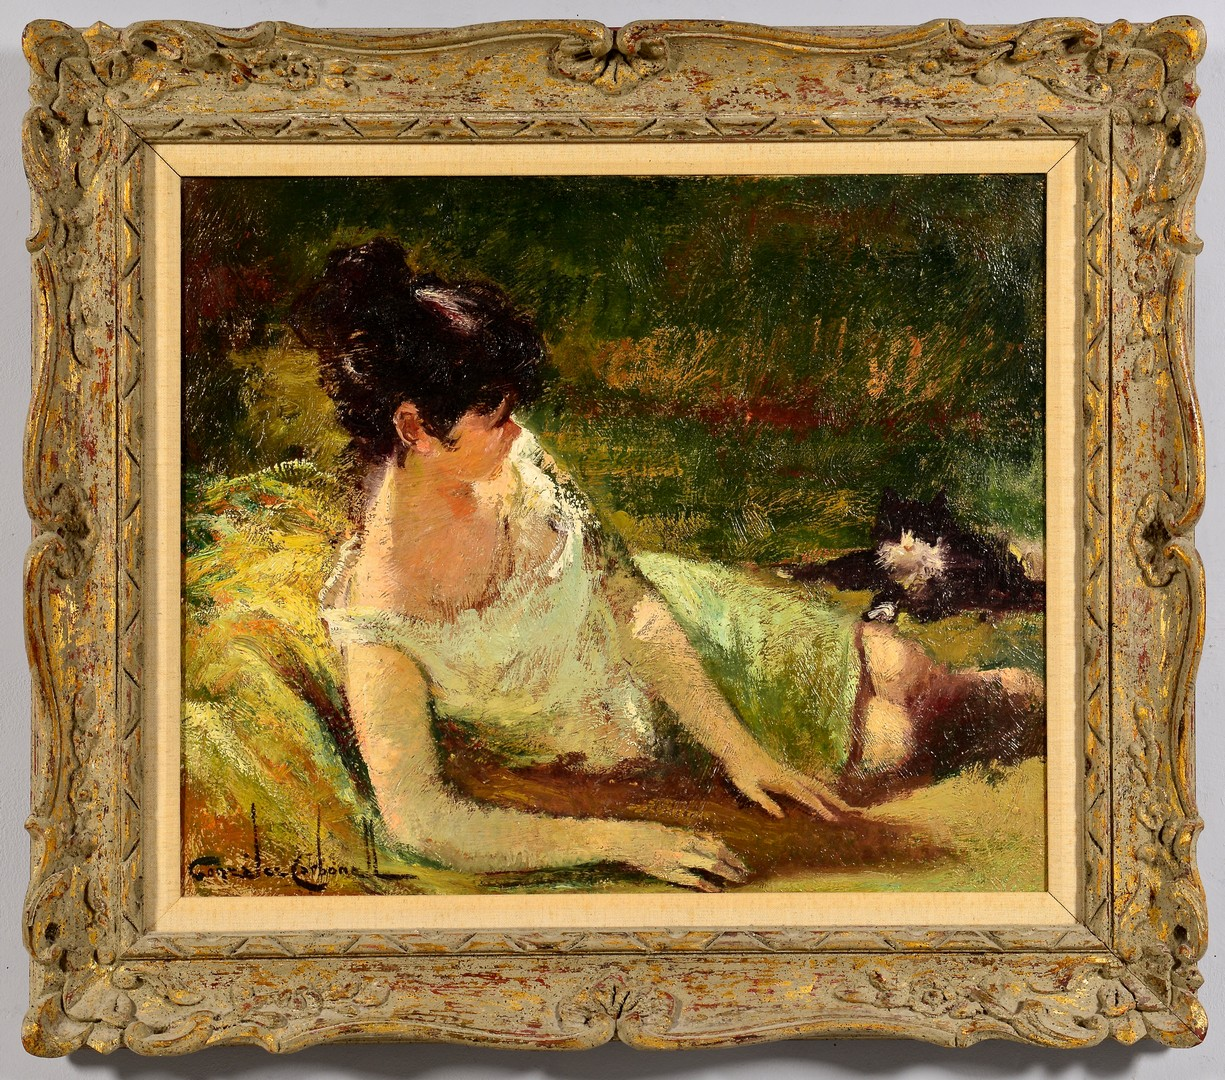 Lot 845: Gonzalez Carbonell Oil on Canvas Portrait